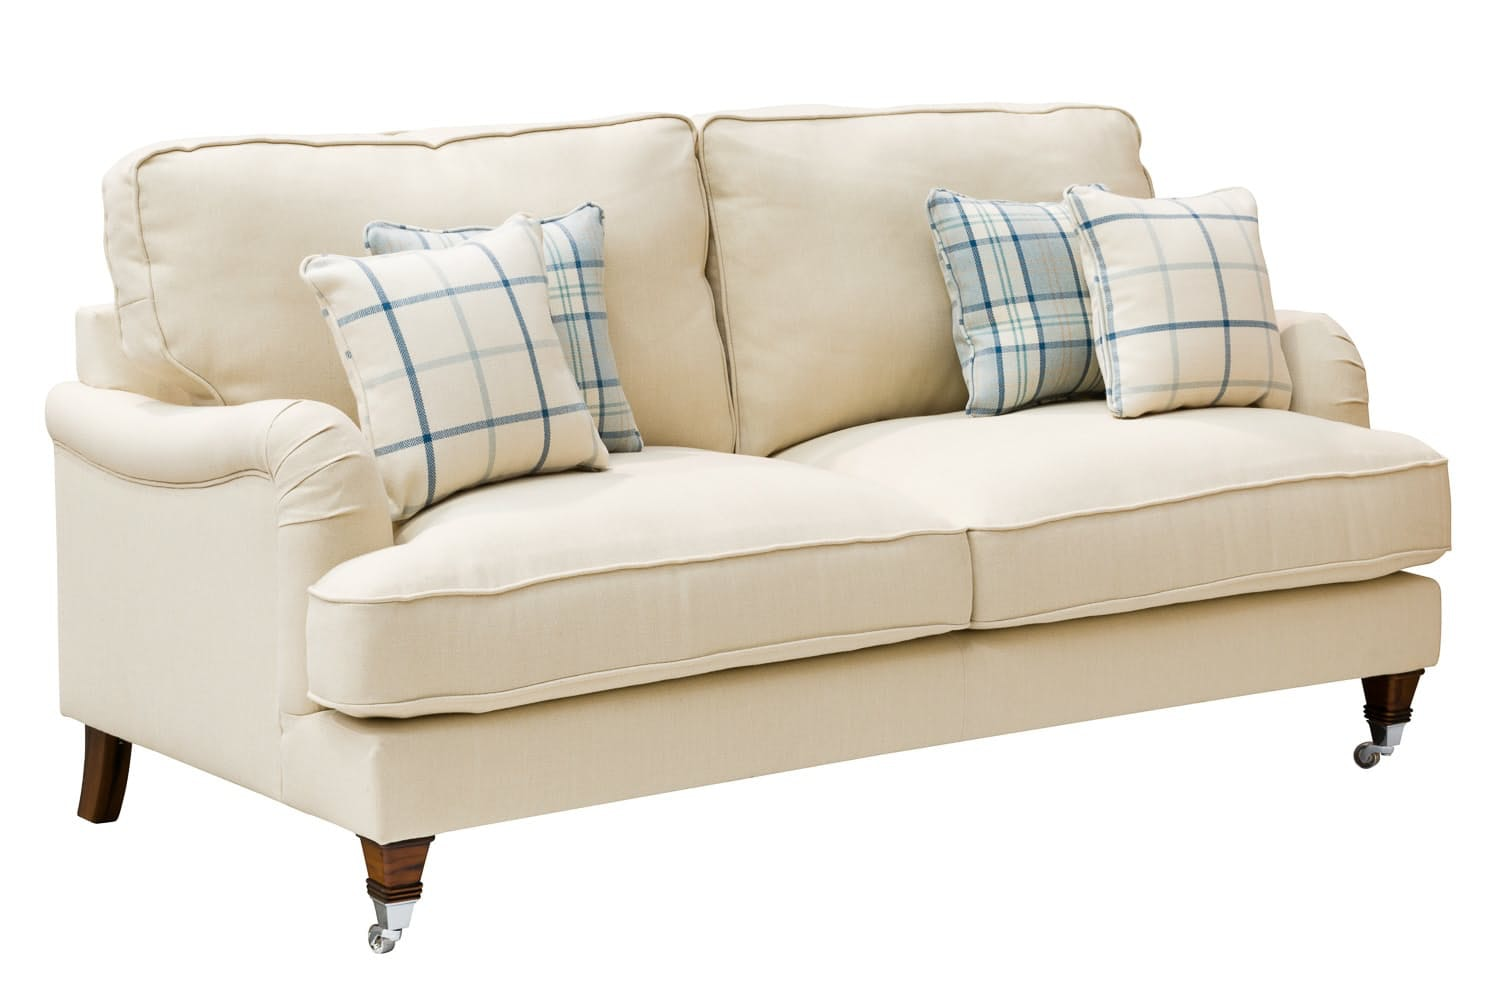 Helvick 4 Seater Sofa